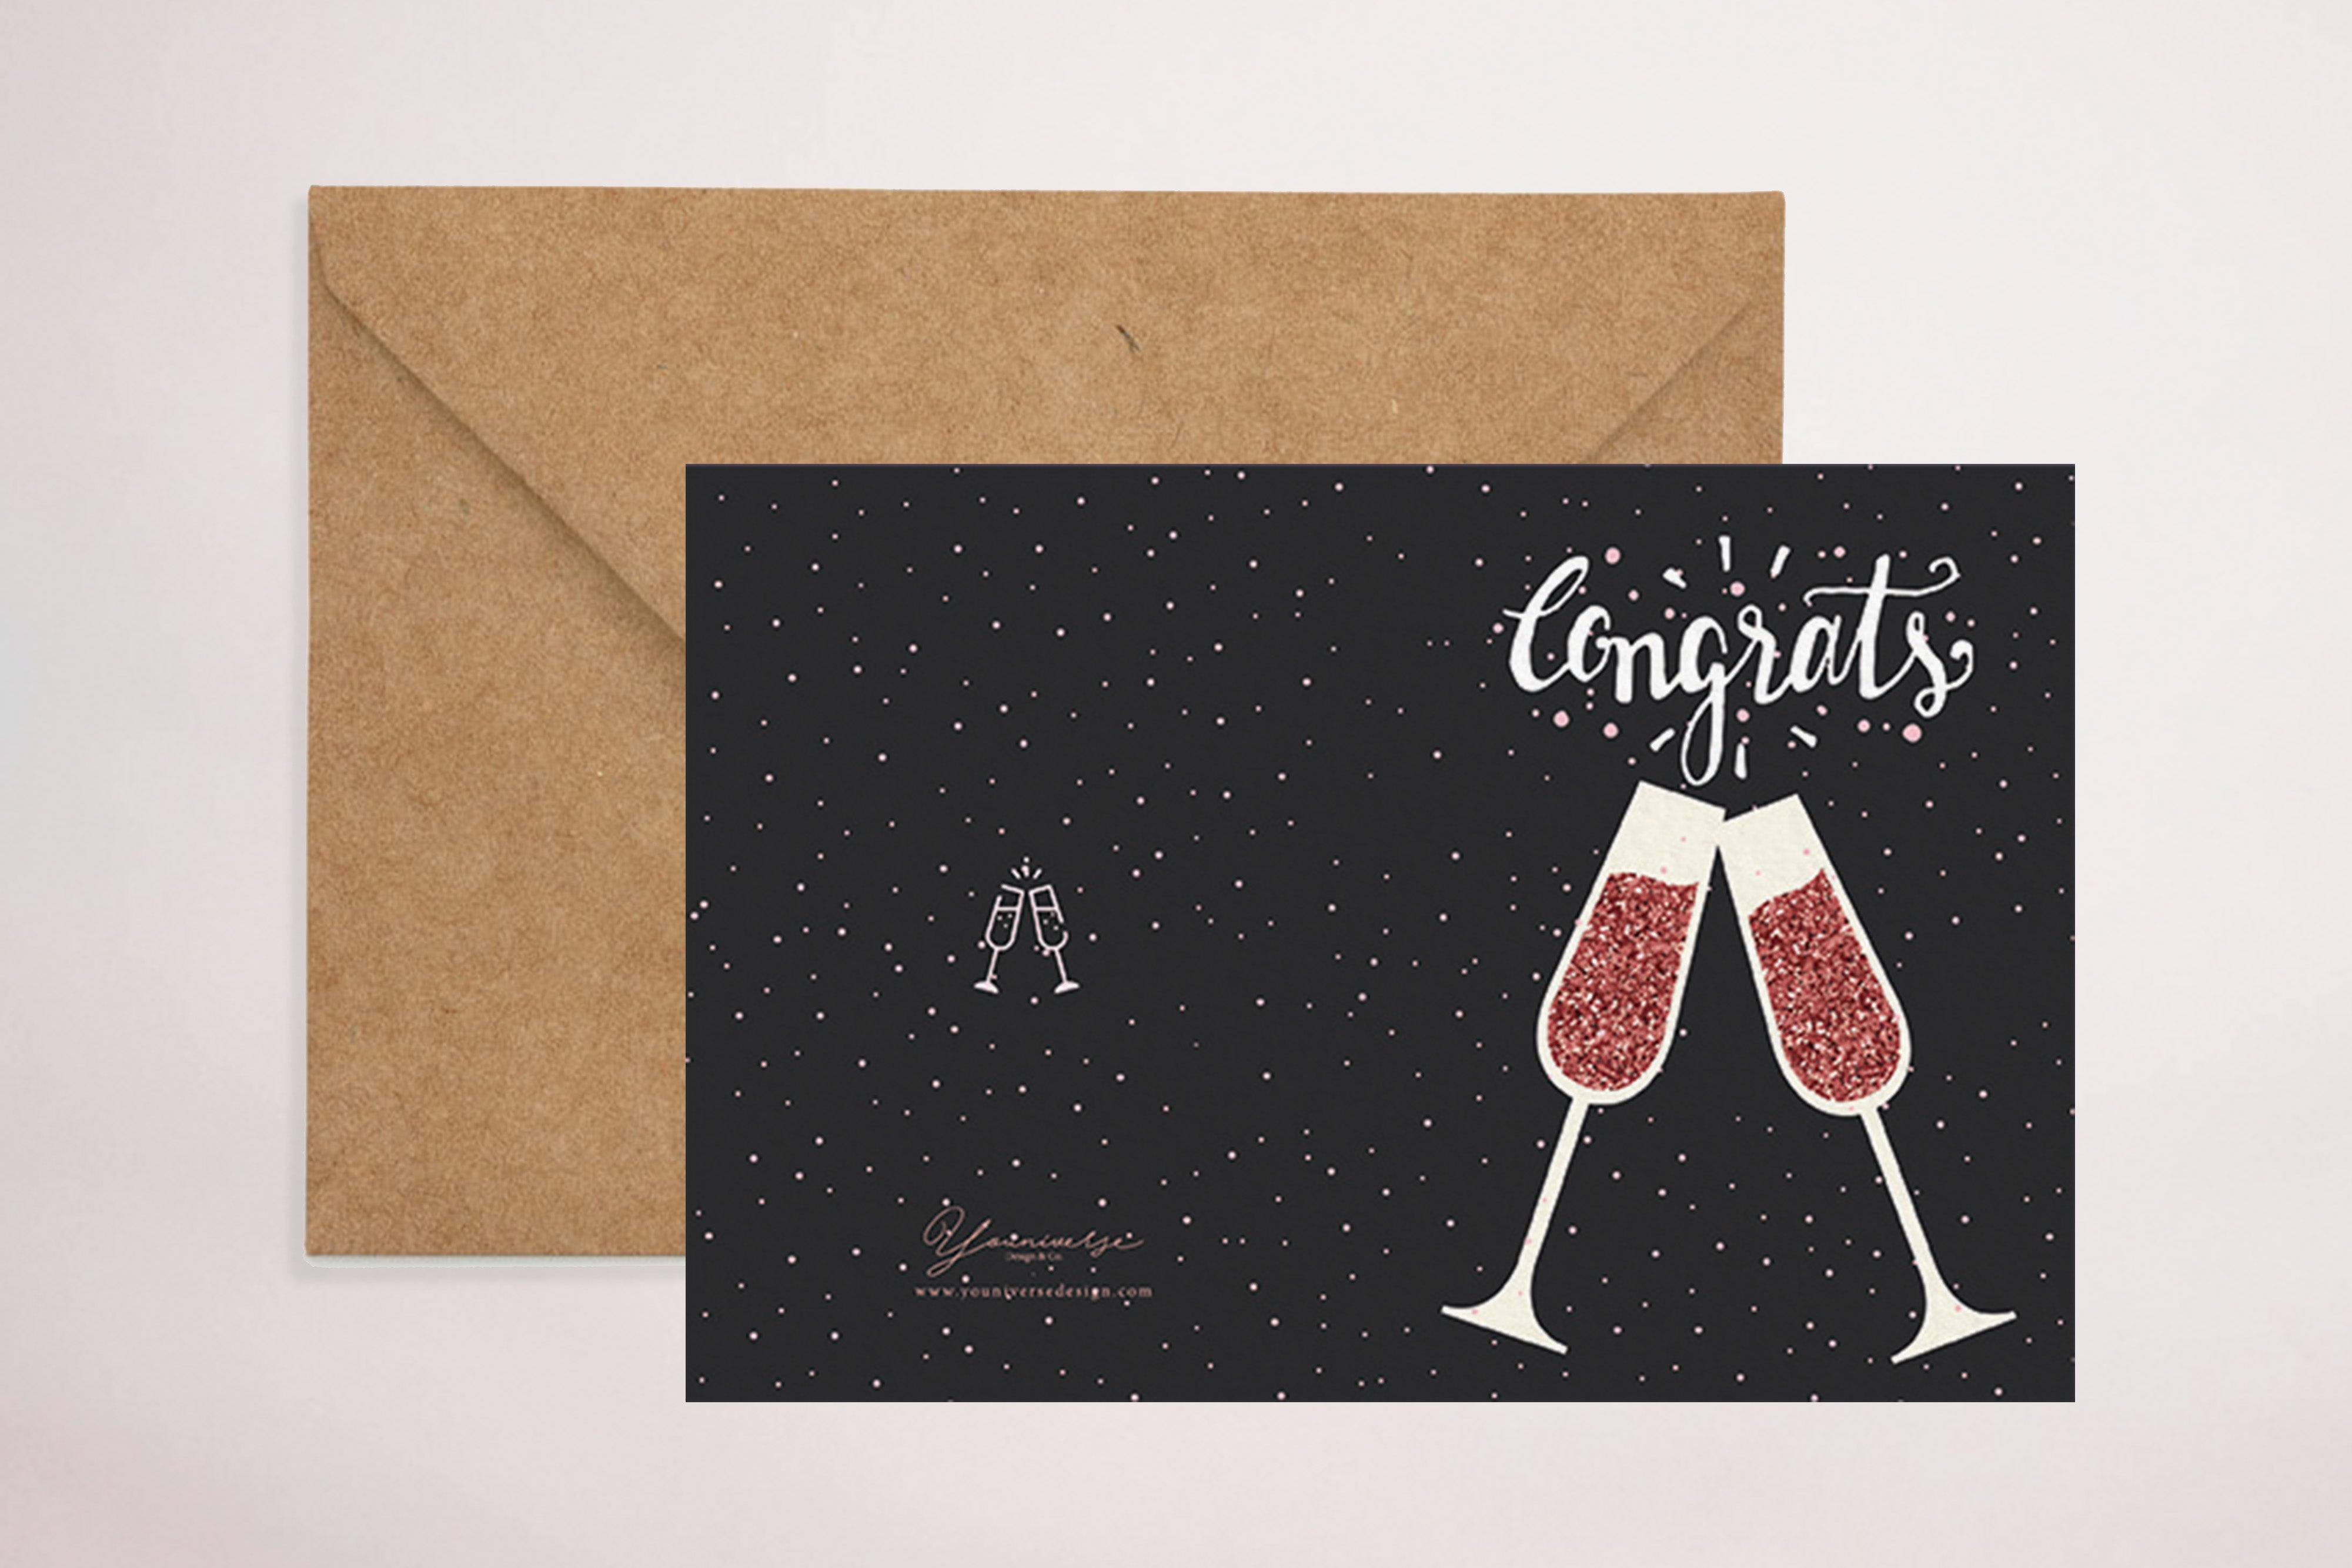 Congratulations - Cheers (Greeting Card)